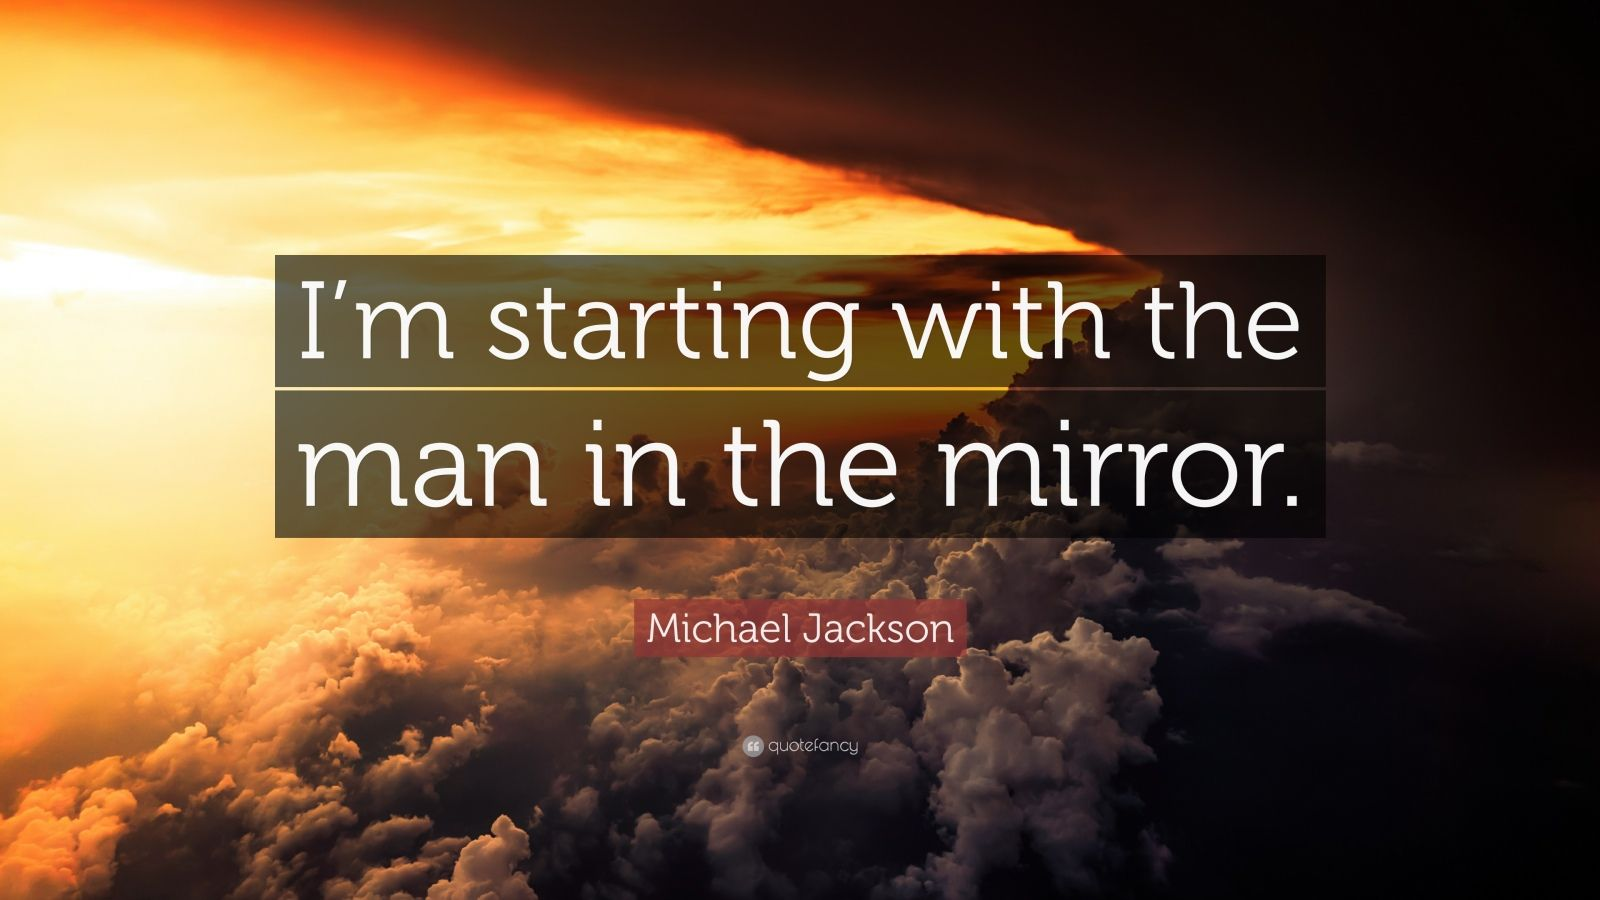 Love Inspiring Quotes Wallpaper Michael Jackson Quote I M Starting With The Man In The